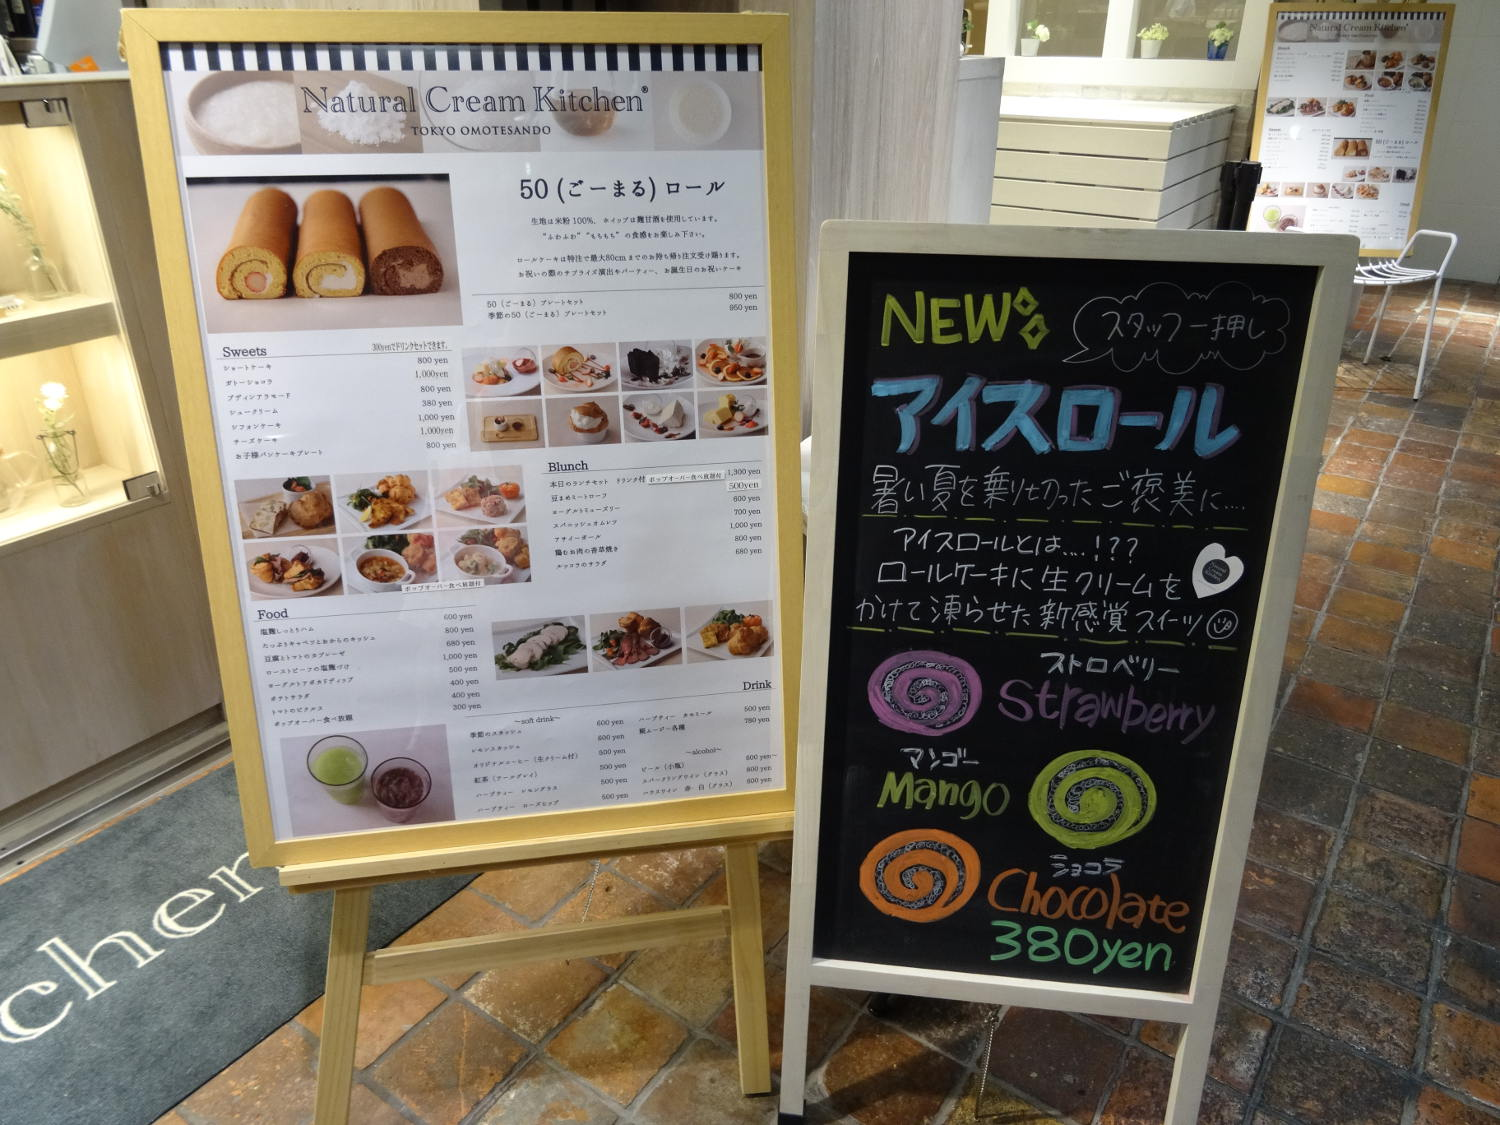 omotesando_natural-cream-kitchen-menu